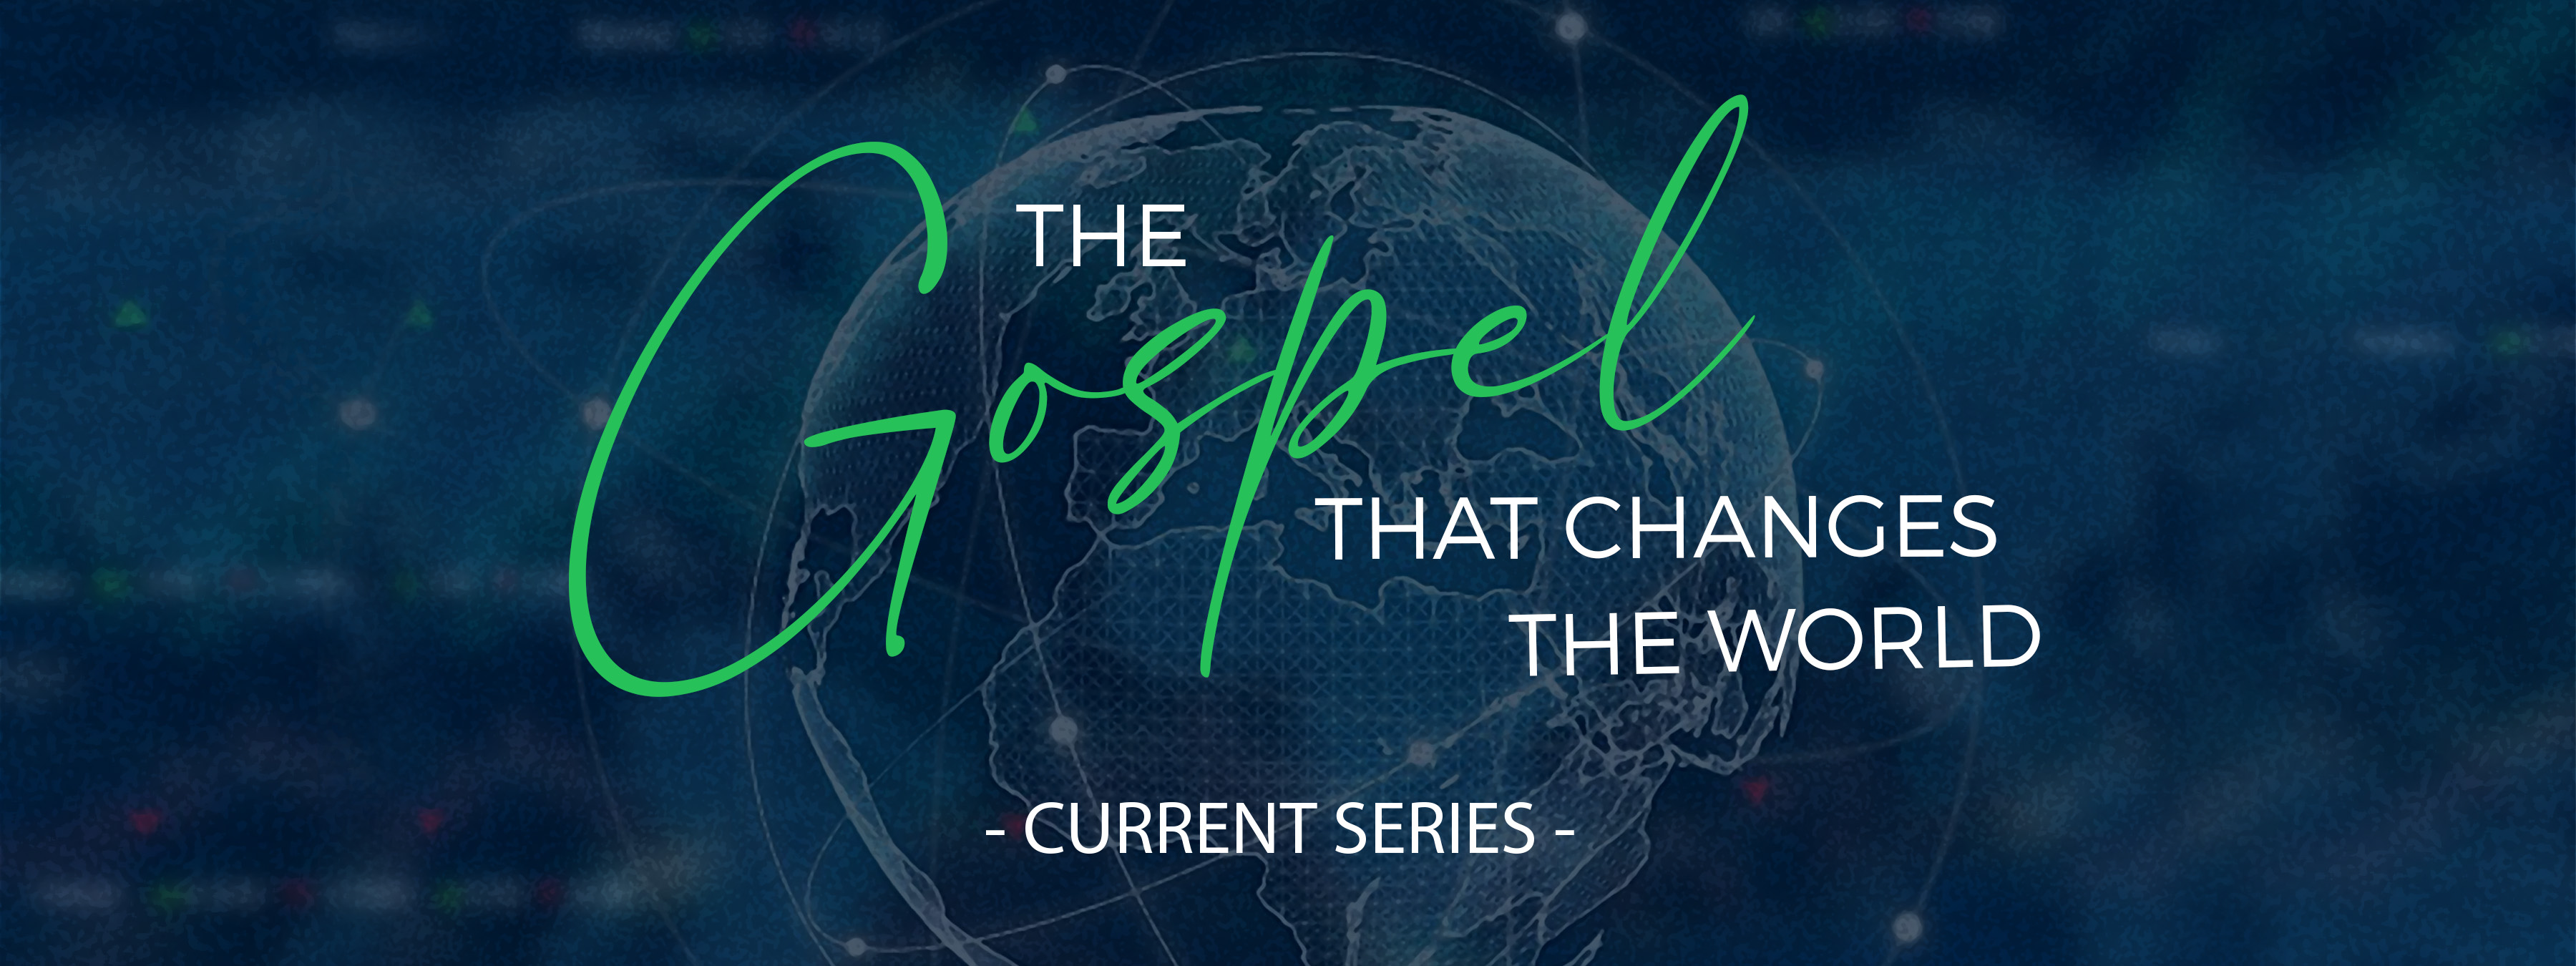 Gospel_Changes_the_World_Banner.jpg